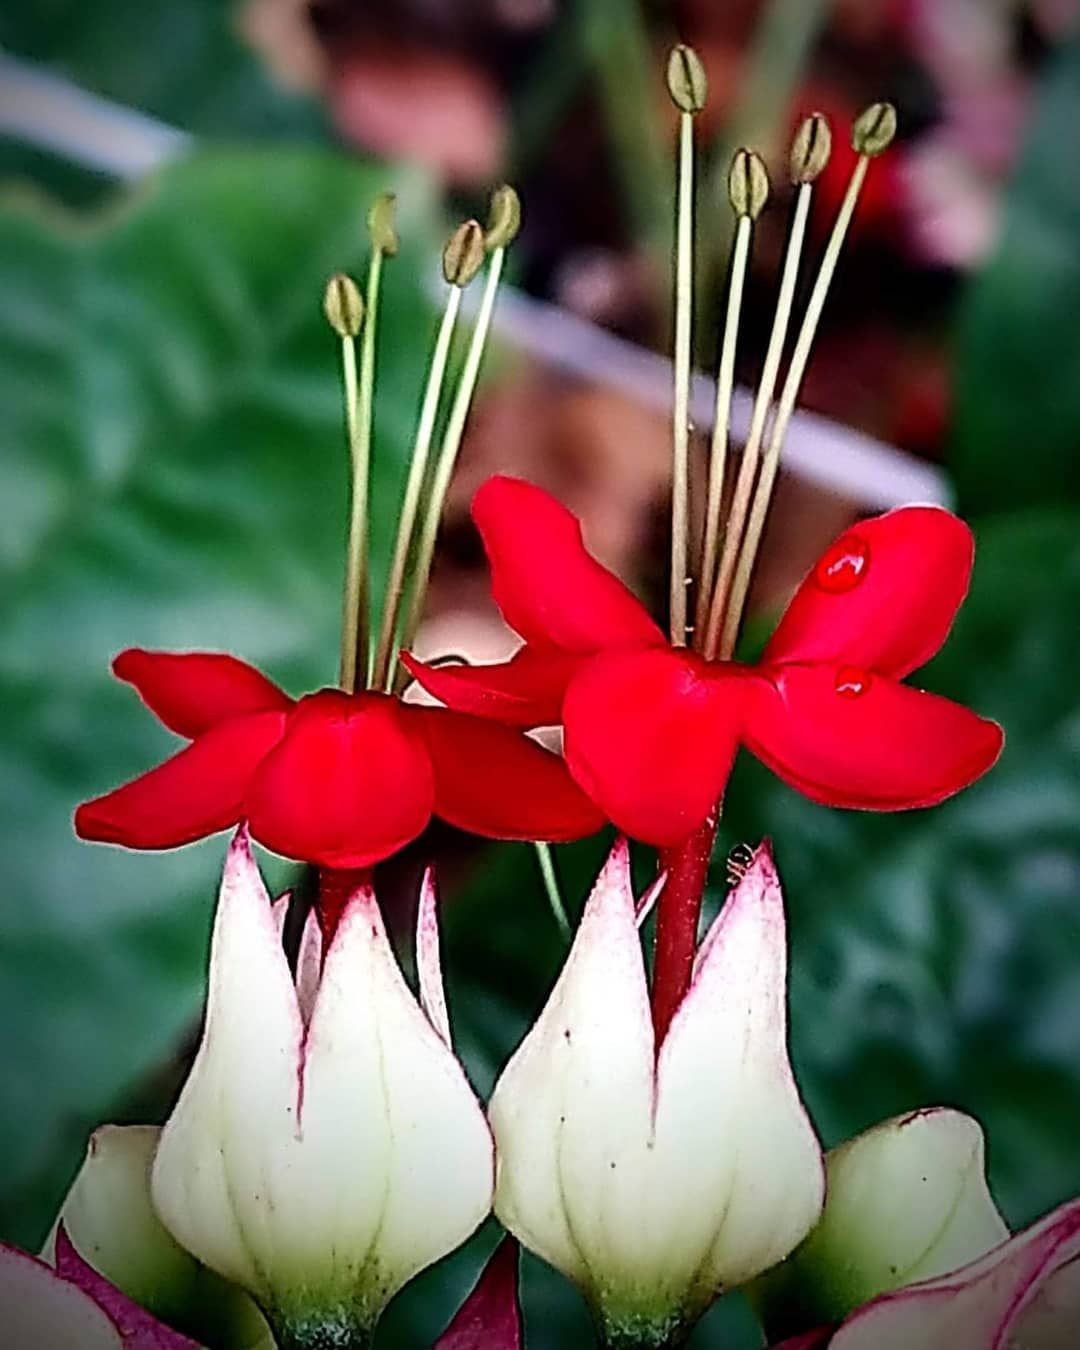 Clerodendrum Thomsoniae Is A Species Of Flowering Plant In The